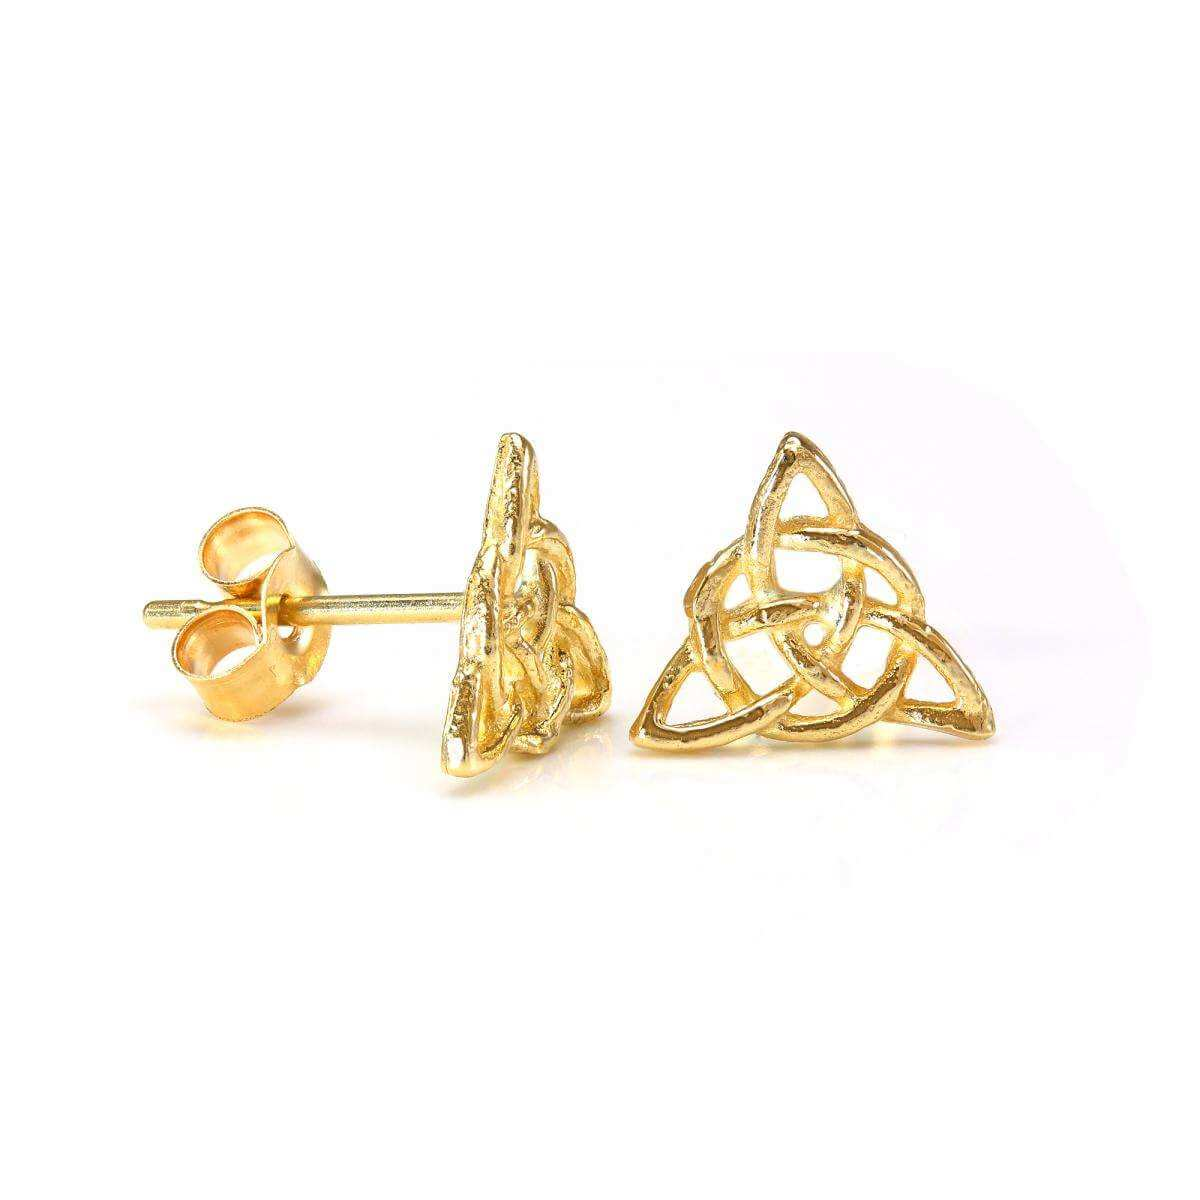 9ct Gold Irish Triangular Celtic Knot Stud Earrings